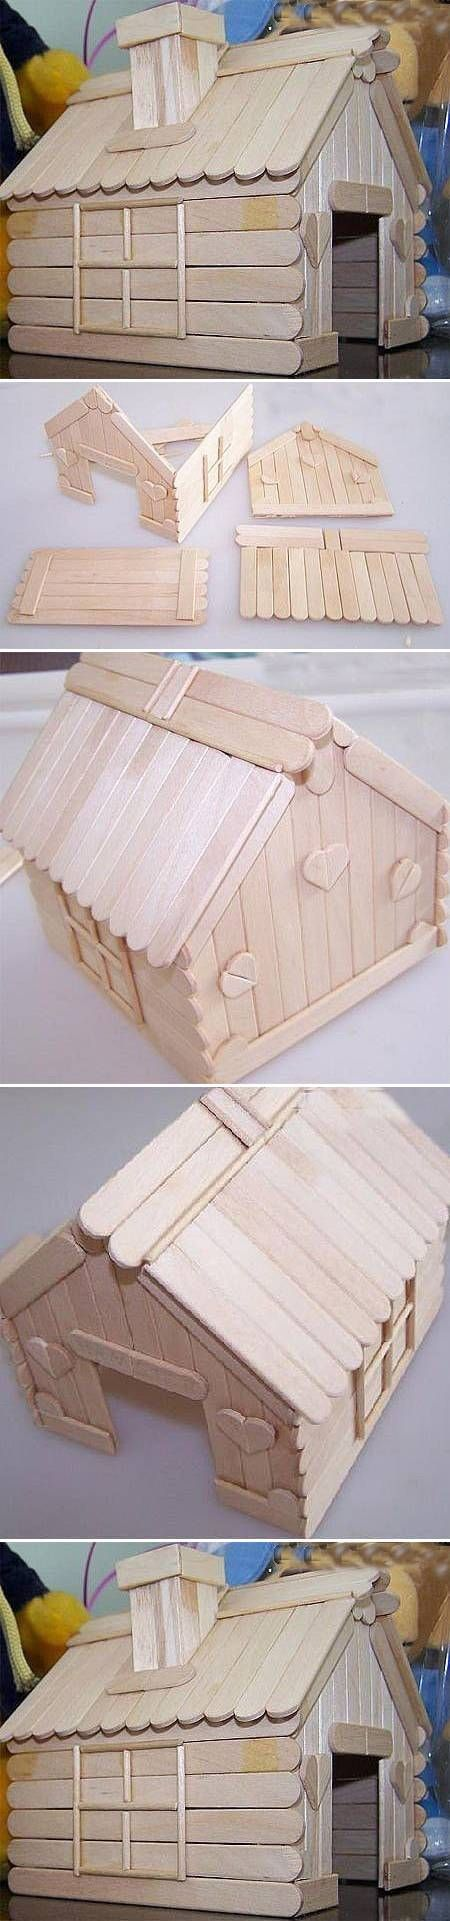 How to build a house with Popsicle Sticks step by step DIY tutorial instructions / How To Instructions